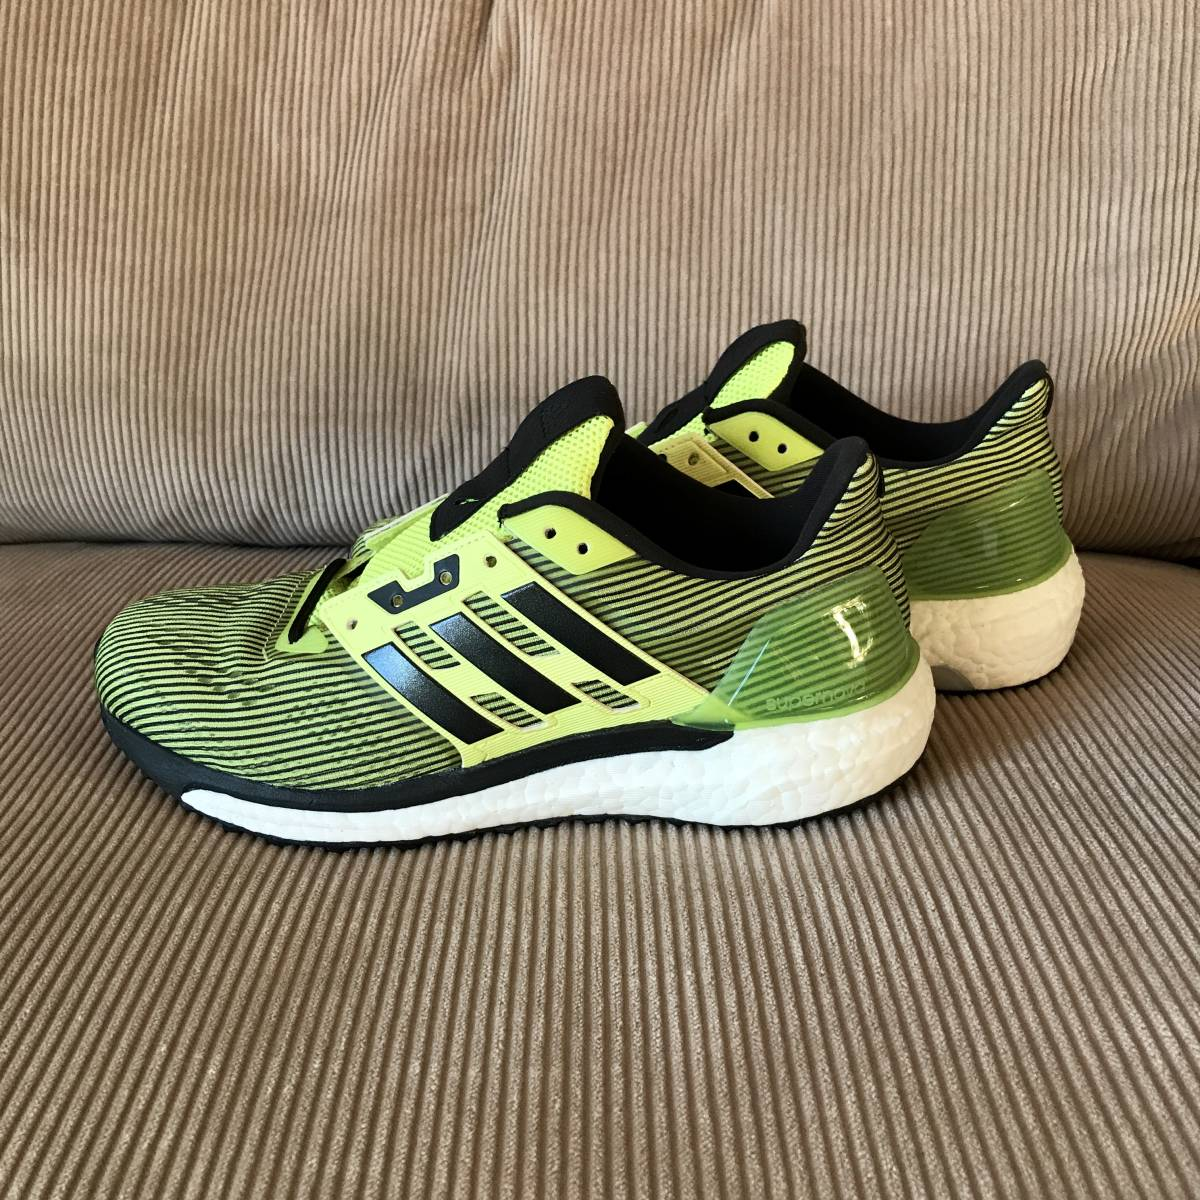 5cc8a5c308dbf beautiful goods  adidas supernova BOOST 26.5 Adidas boost running jo silver  g walking marathon shoes yellow pure